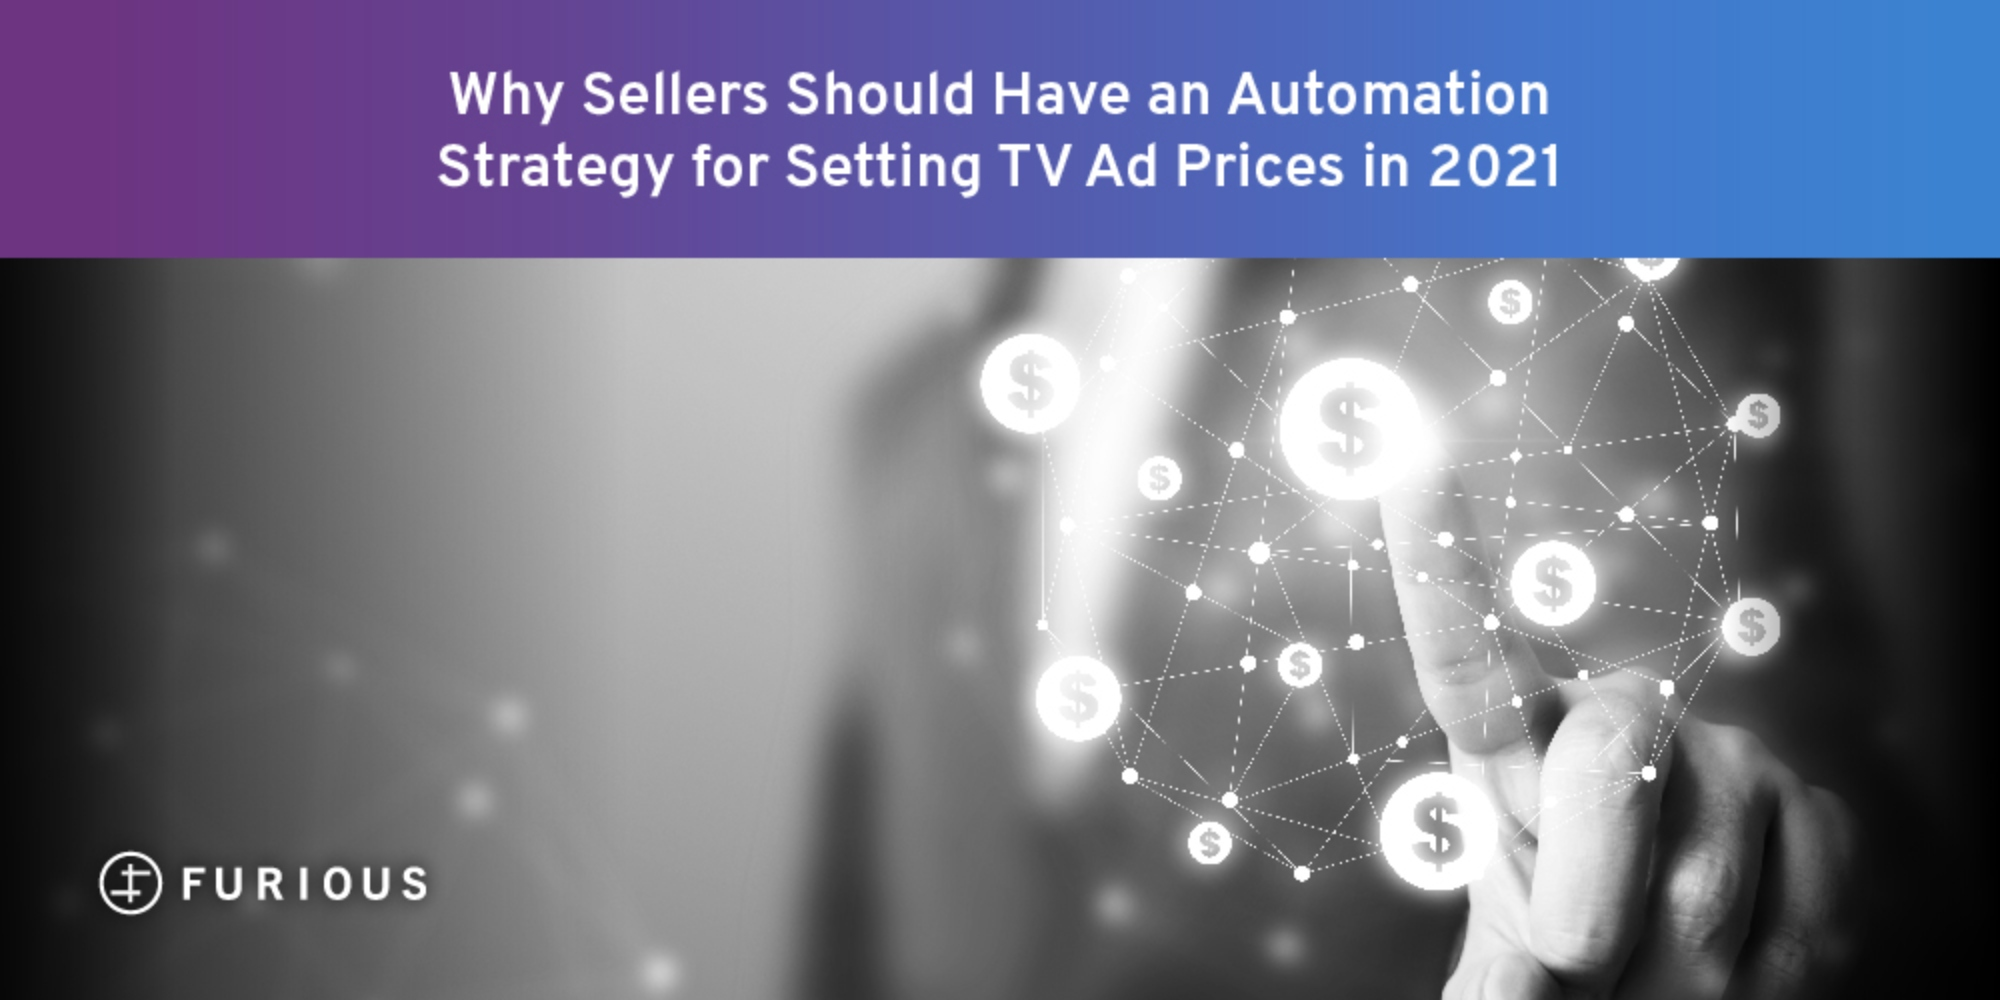 Why Sellers Should Have an Automation Strategy for Setting TV Ad Prices in 2021